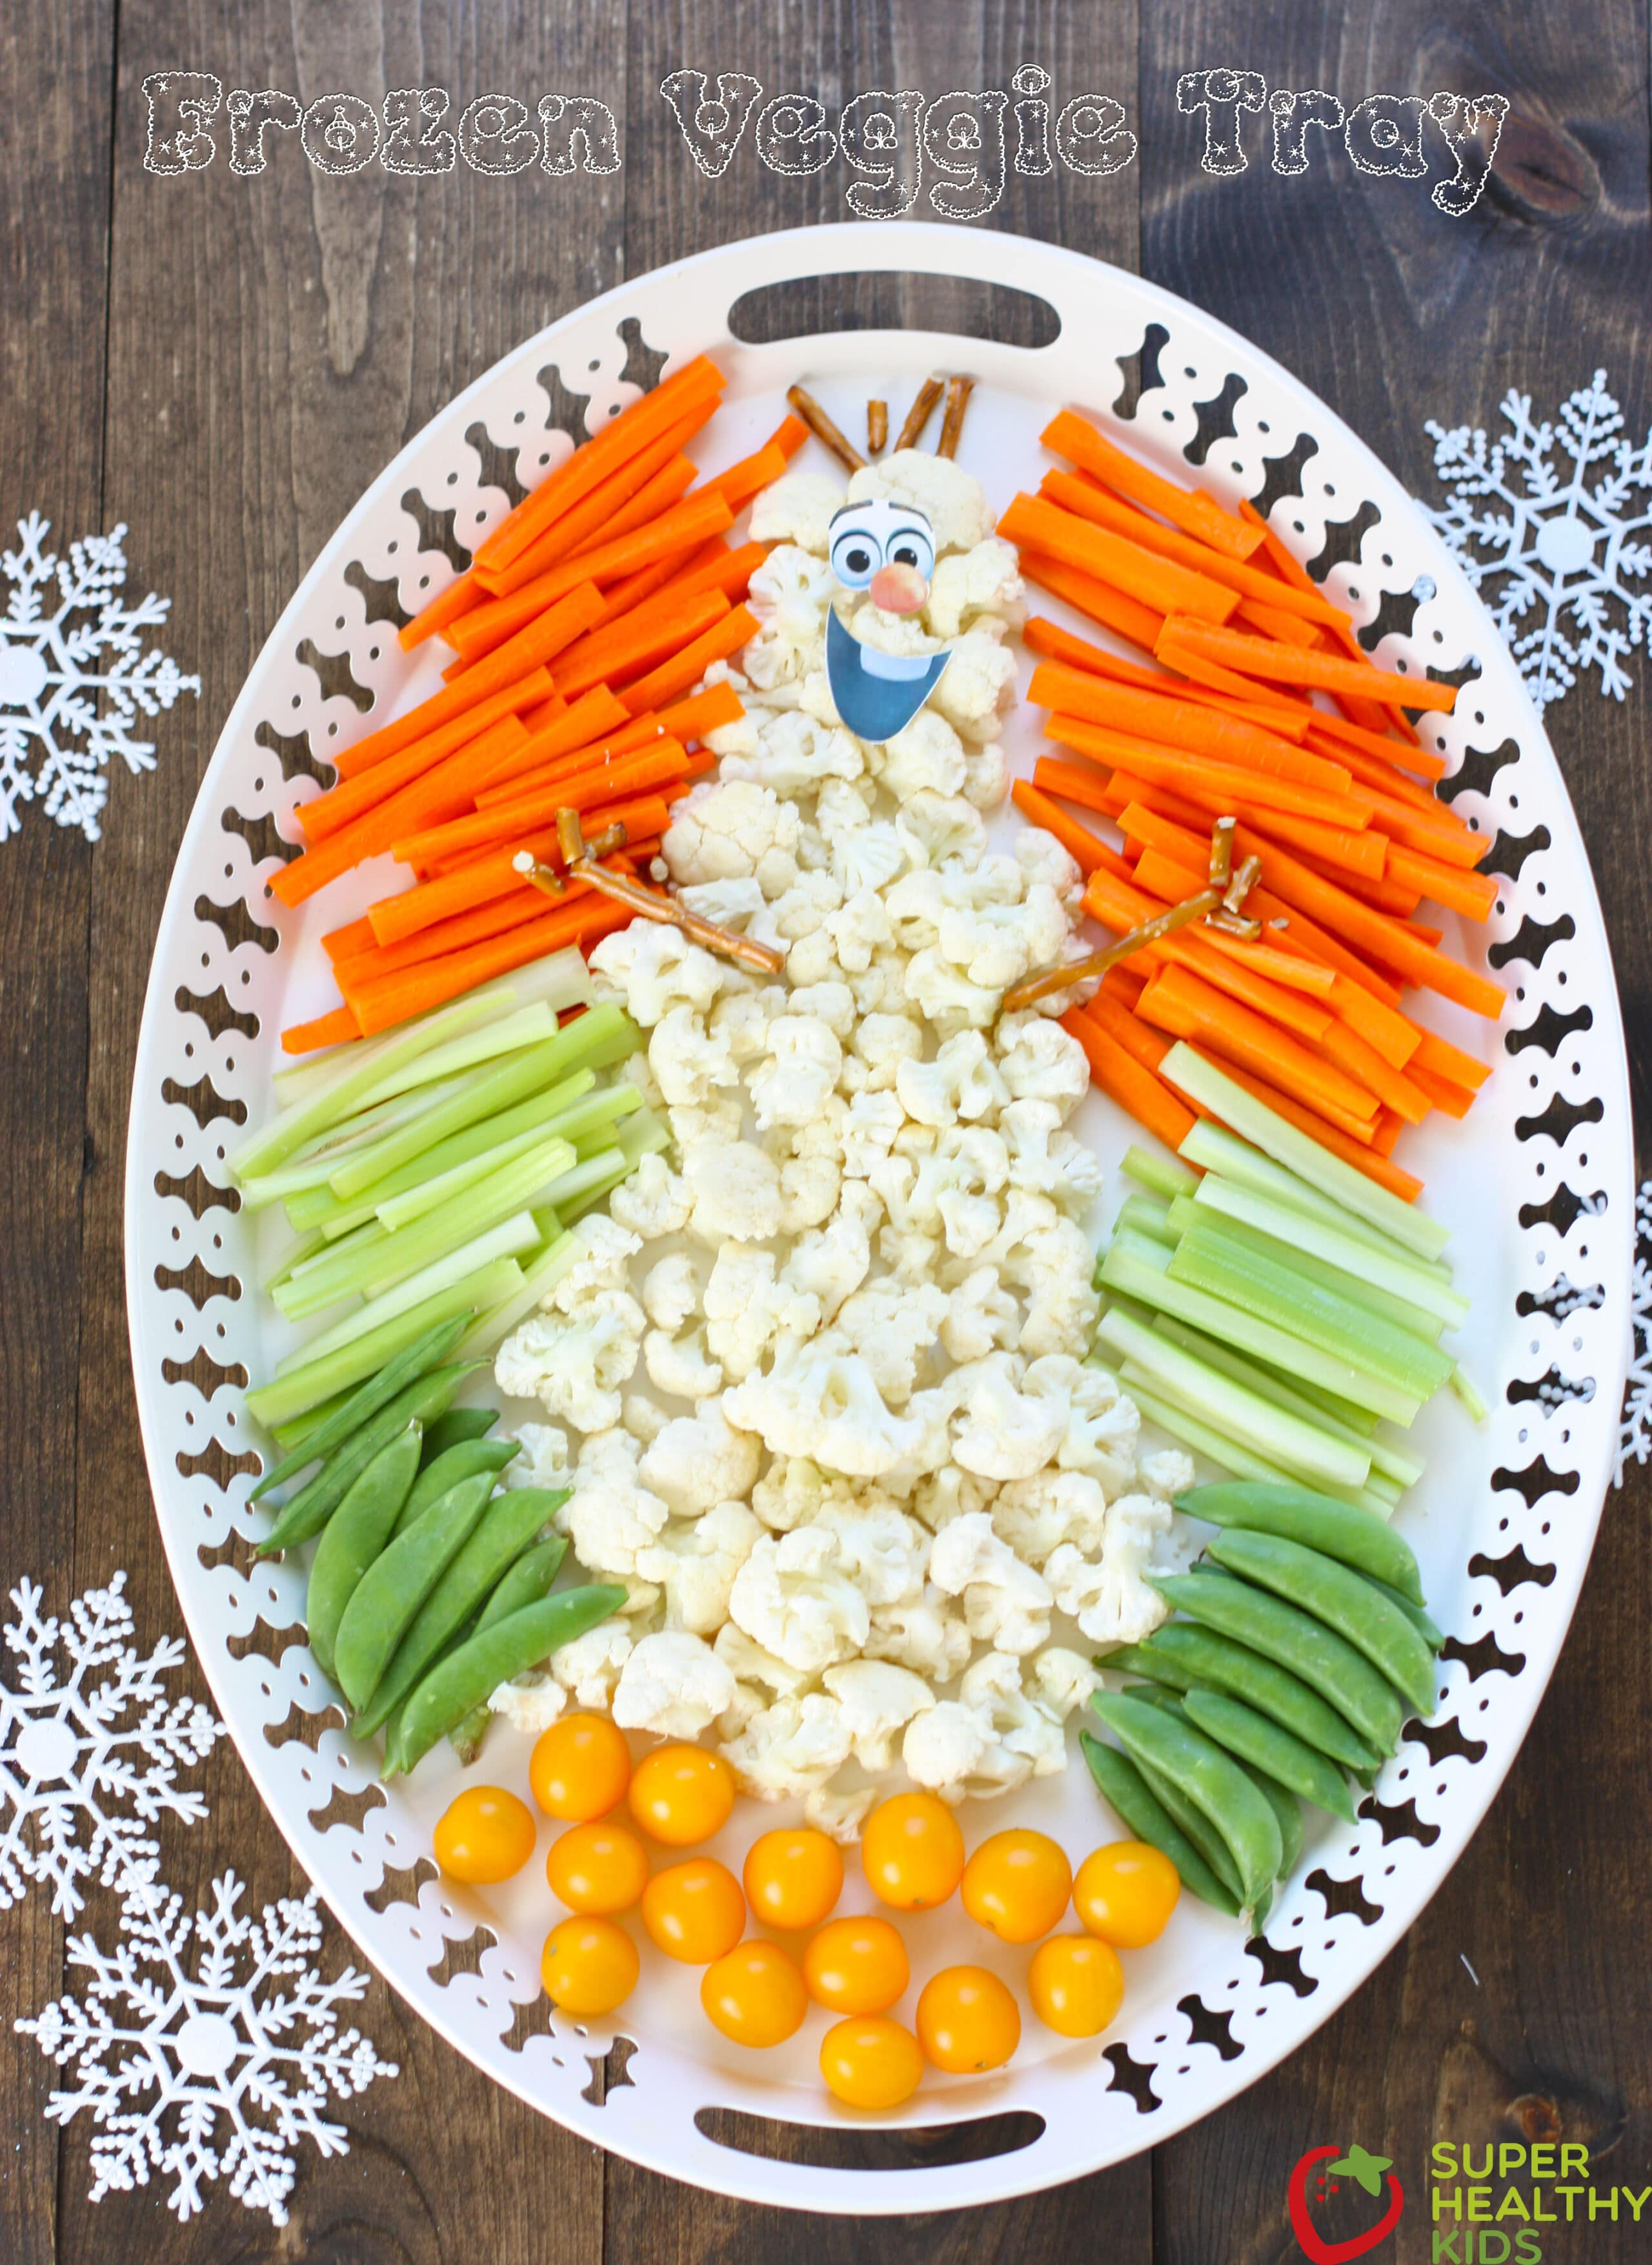 Veggie Platters For Parties Cheaper Than Retail Price Buy Clothing Accessories And Lifestyle Products For Women Men